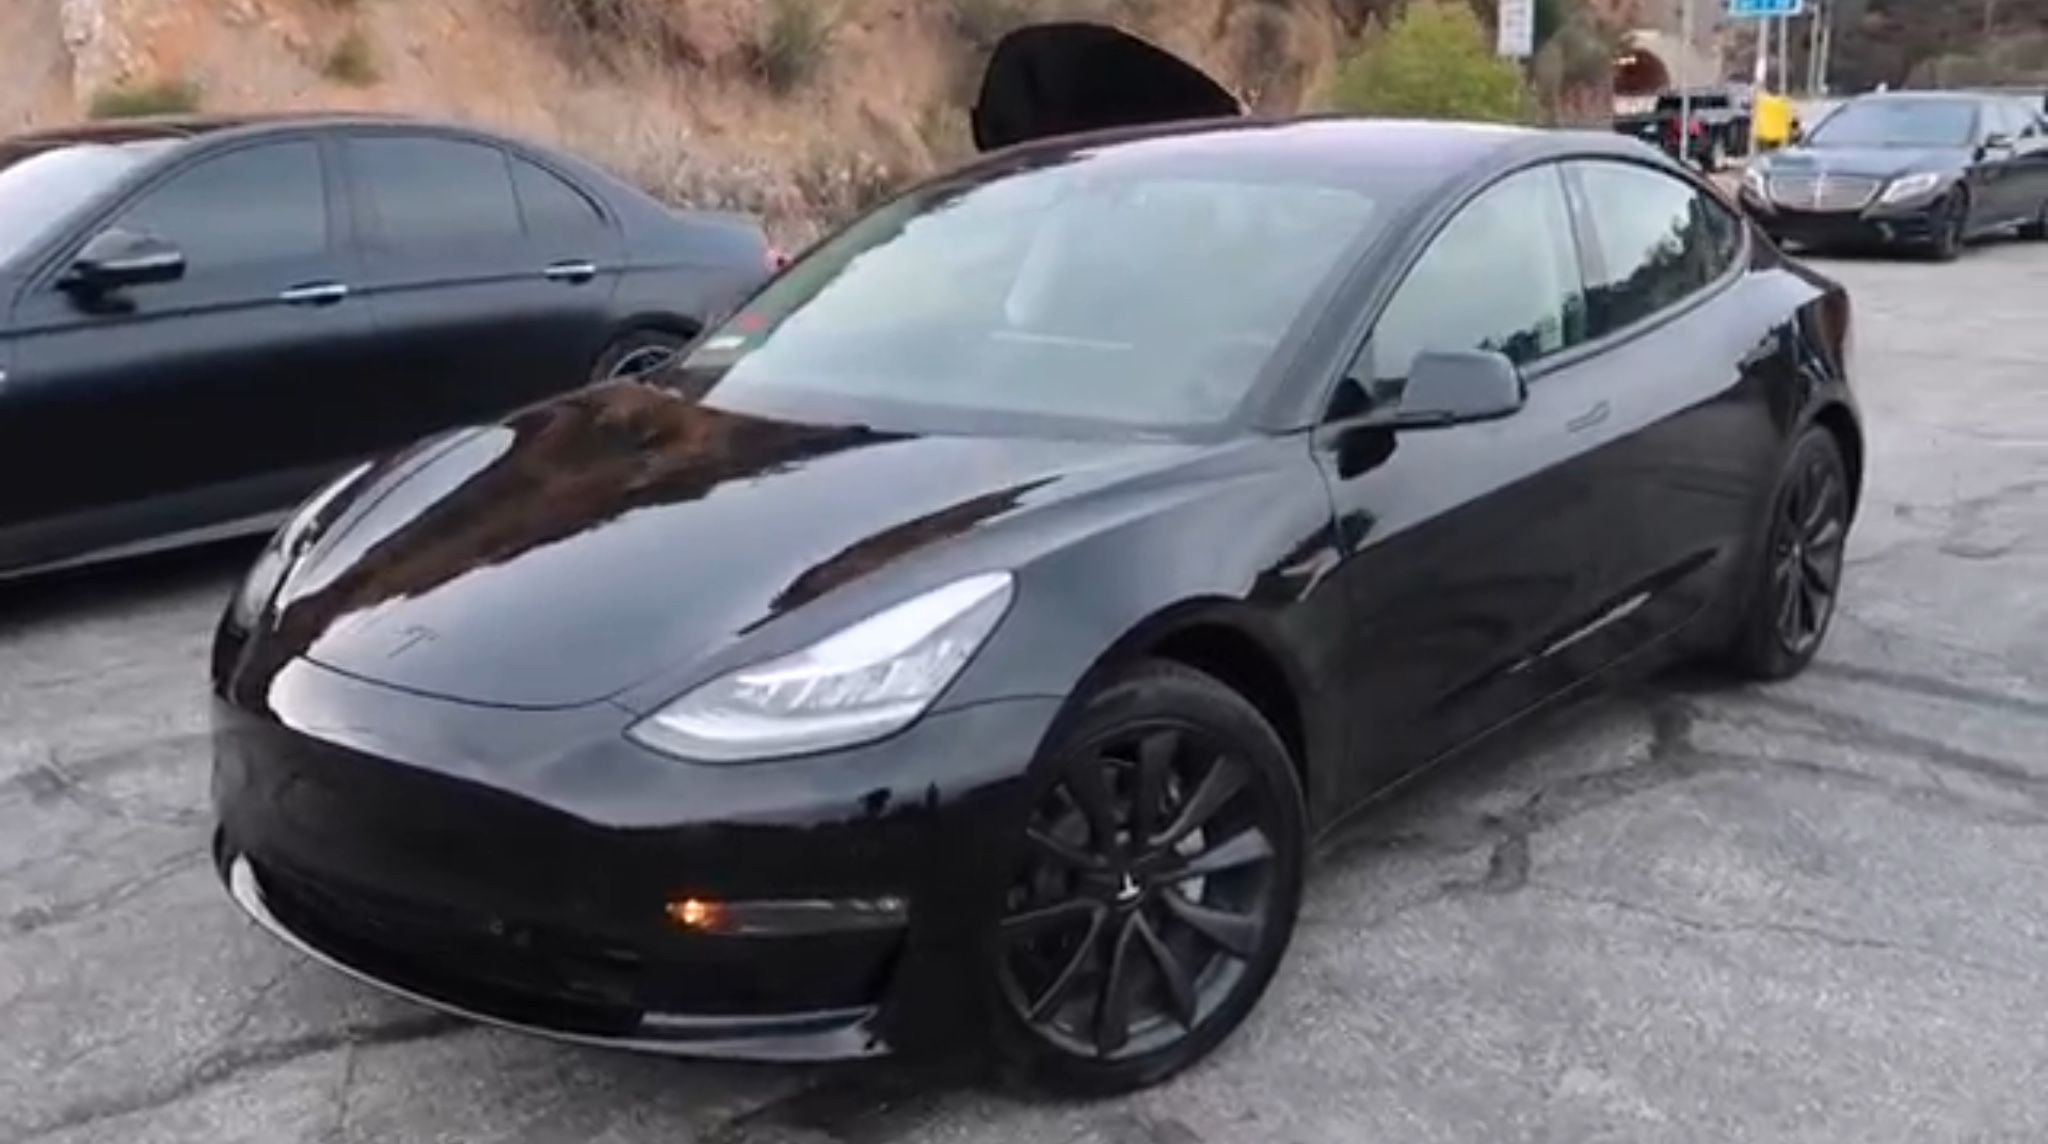 Blacked out Tesla Model 3 | Options for Next Car